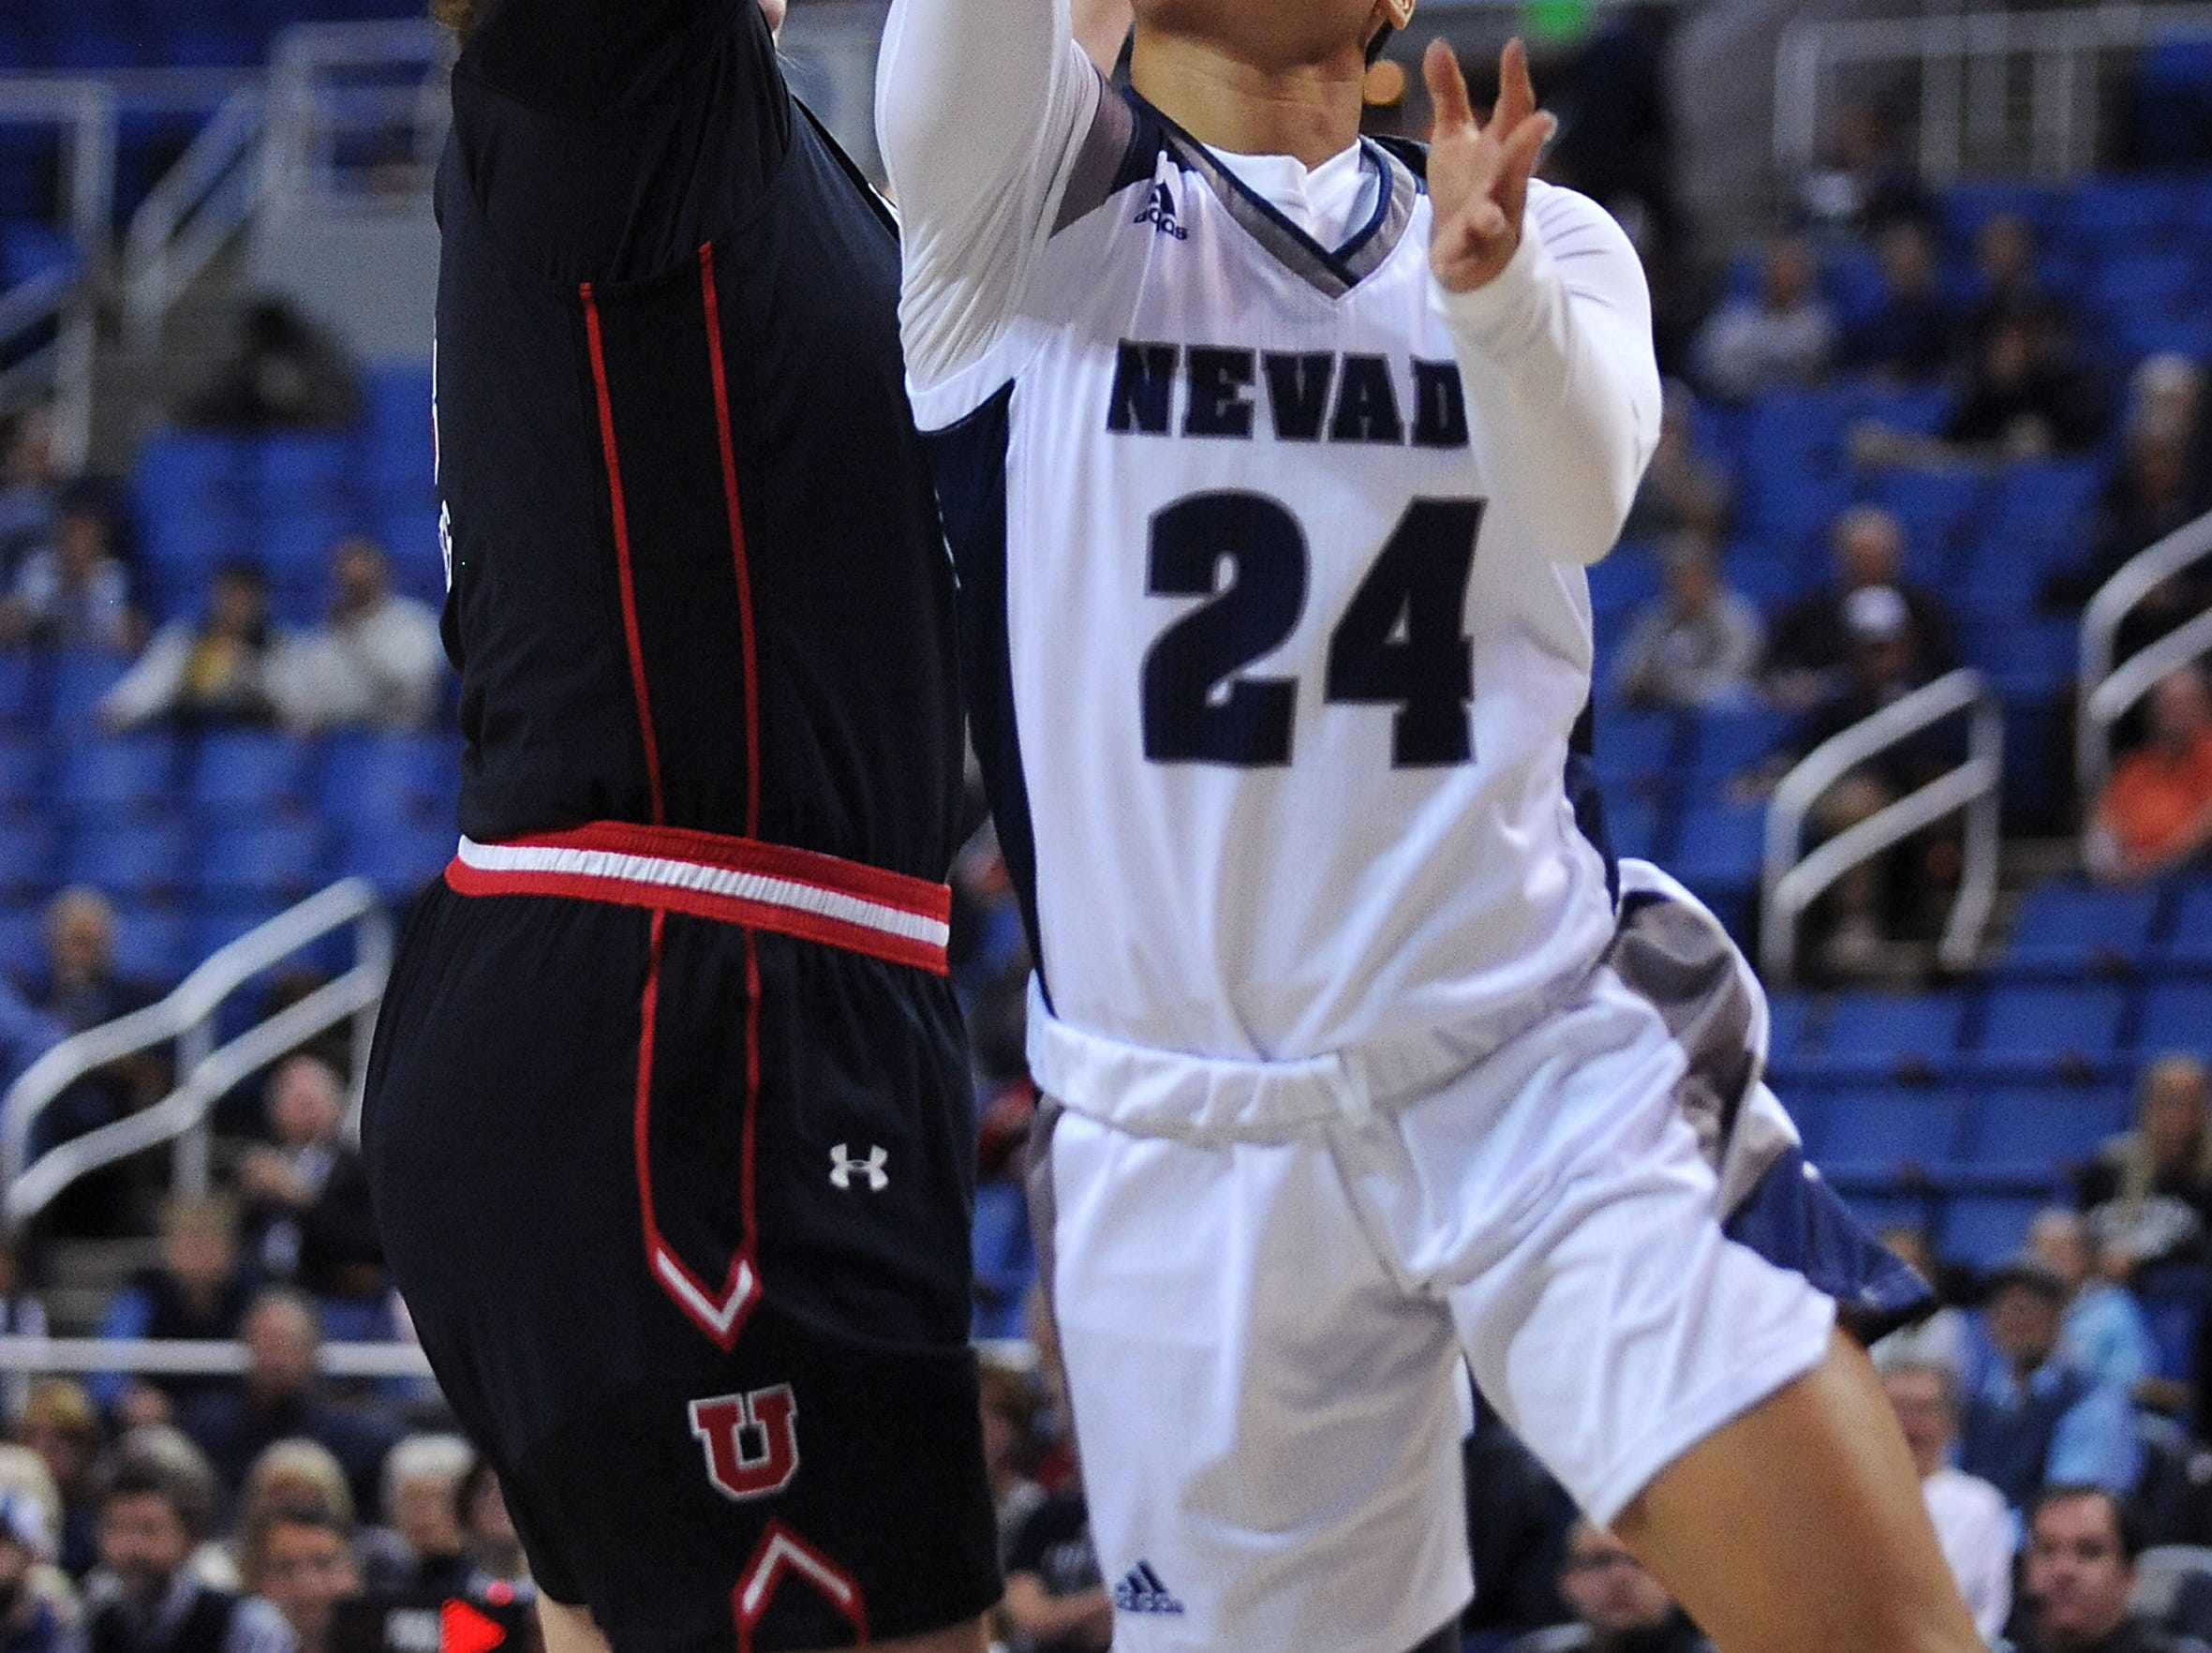 Nevada's Camariah King (24) shoots while taking on Utah during their basketball game at Lawlor Events Center in Reno on Nov. 7, 2018.